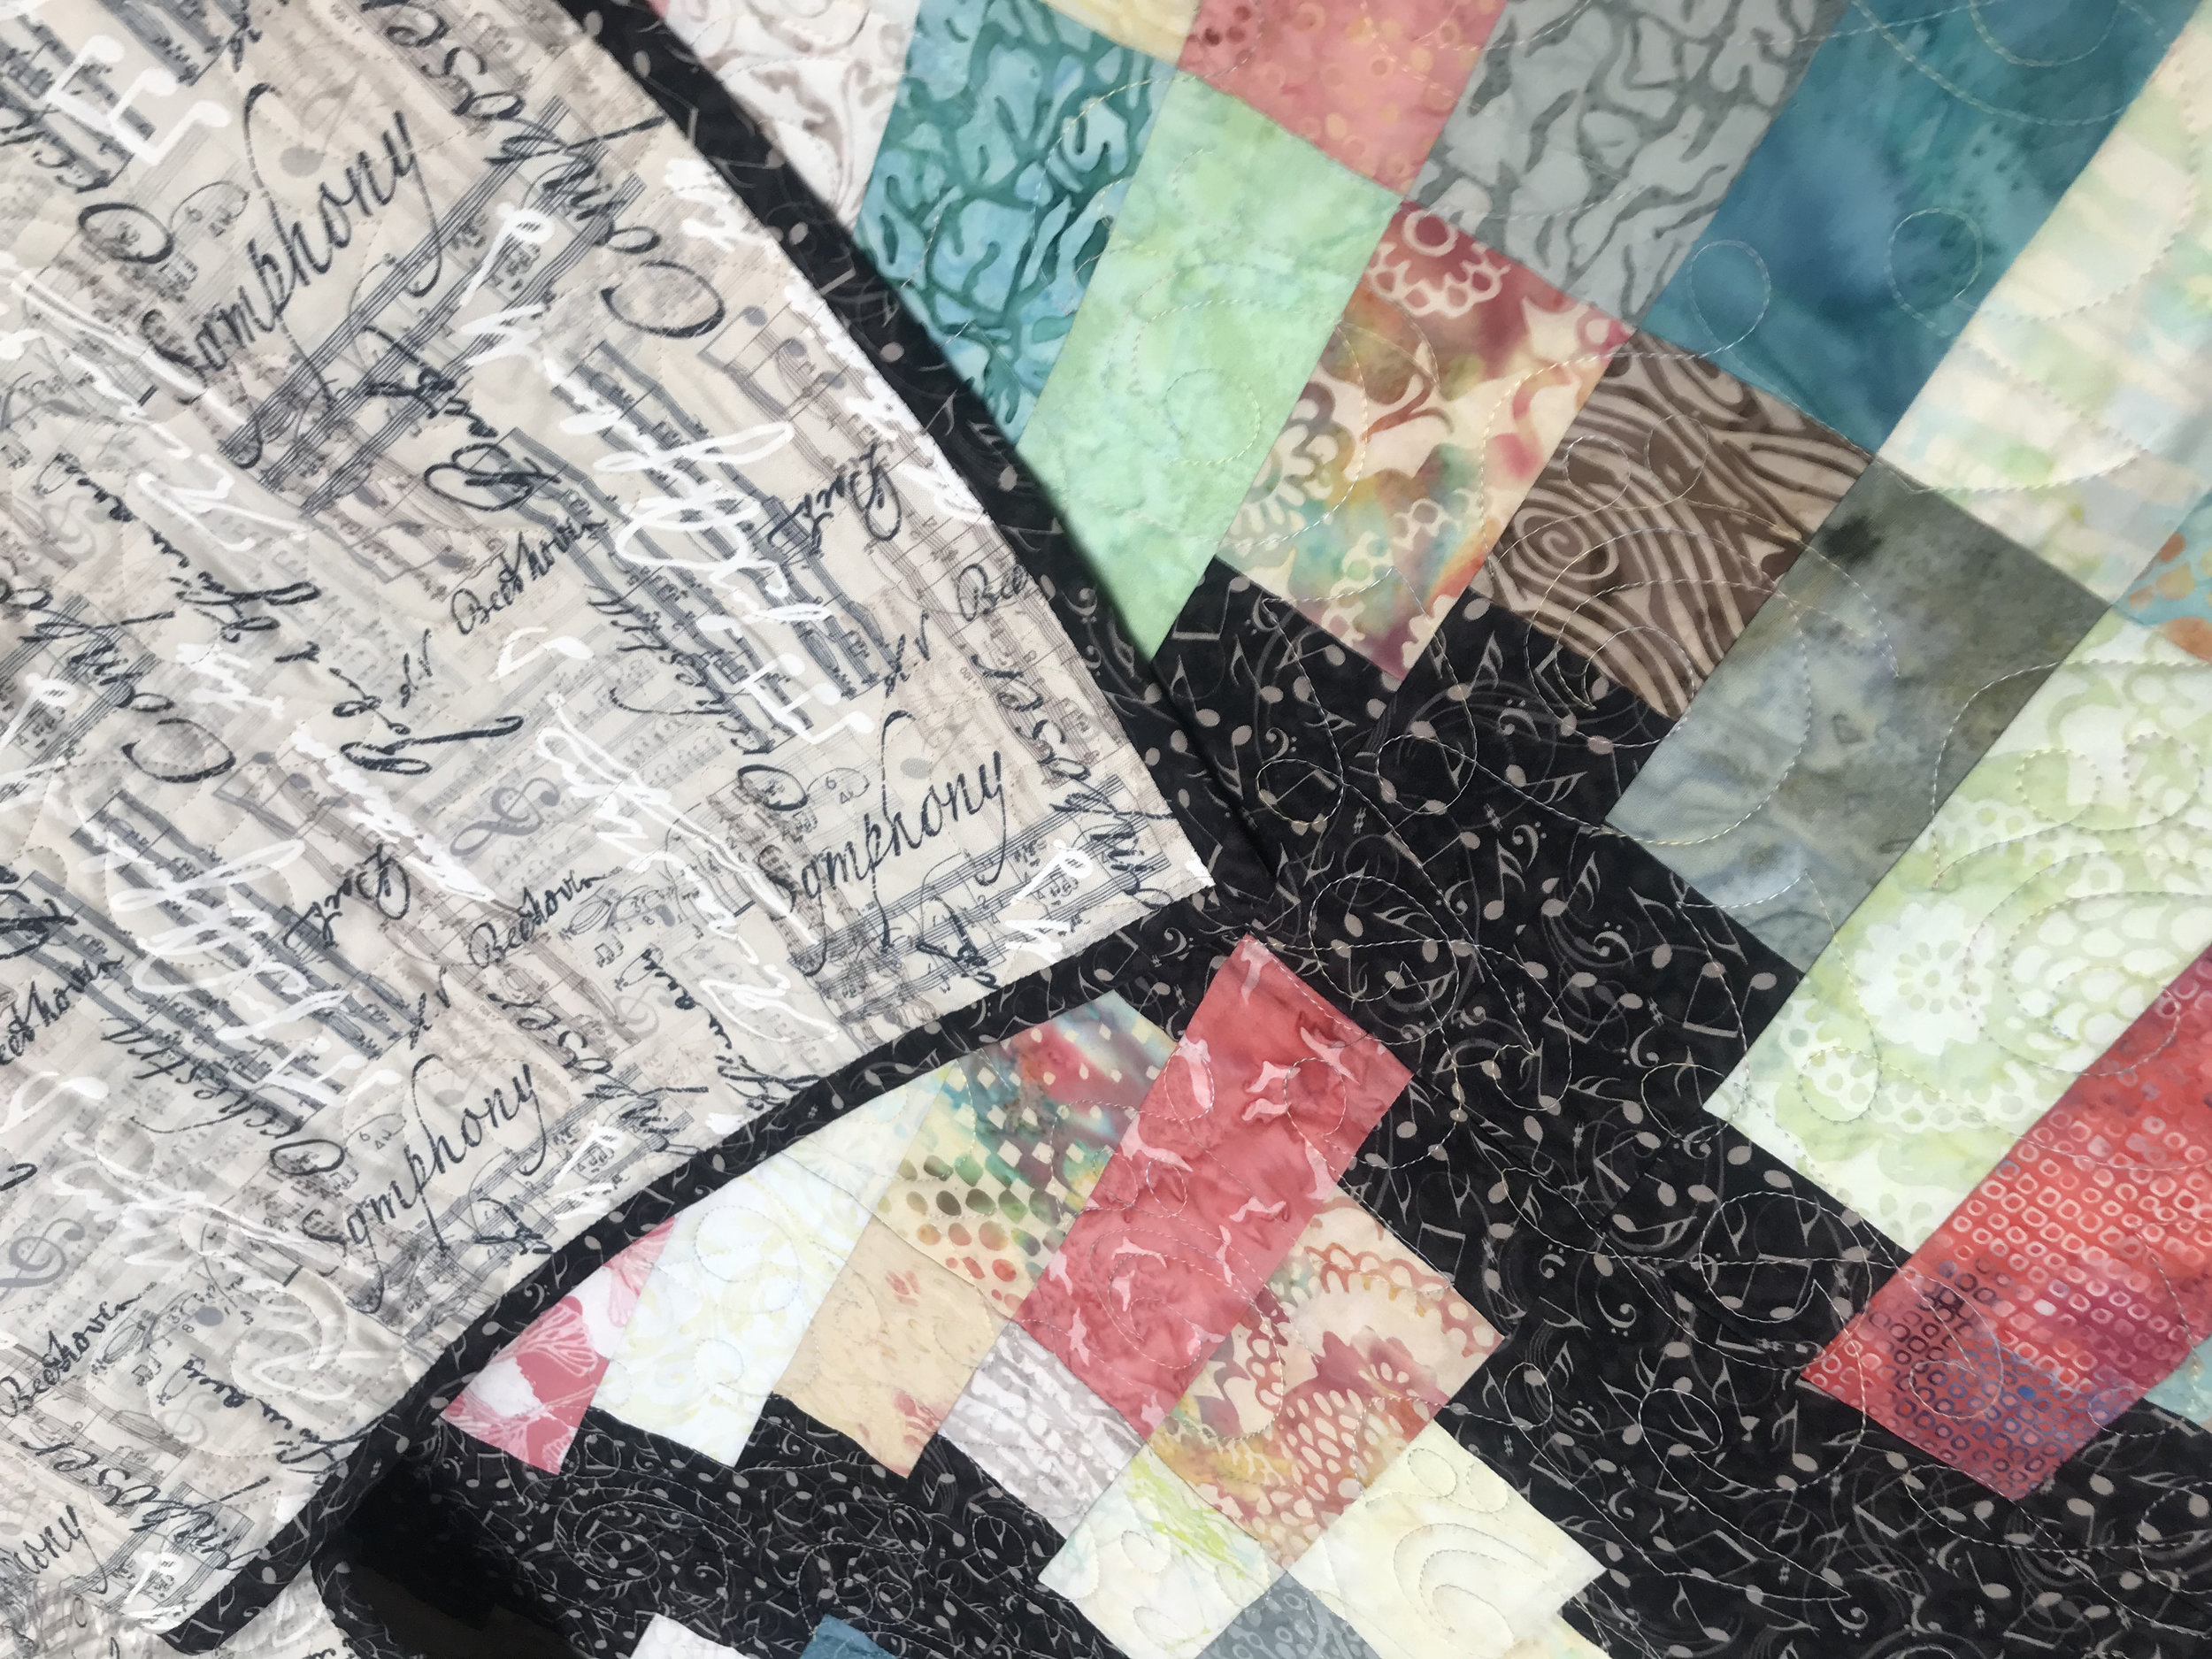 Rhapsody Quilt will be raffled off at this concert! You can purchase tickets now or at the event. Only $20 per ticket. Stock up at the concert…by end of intermission!